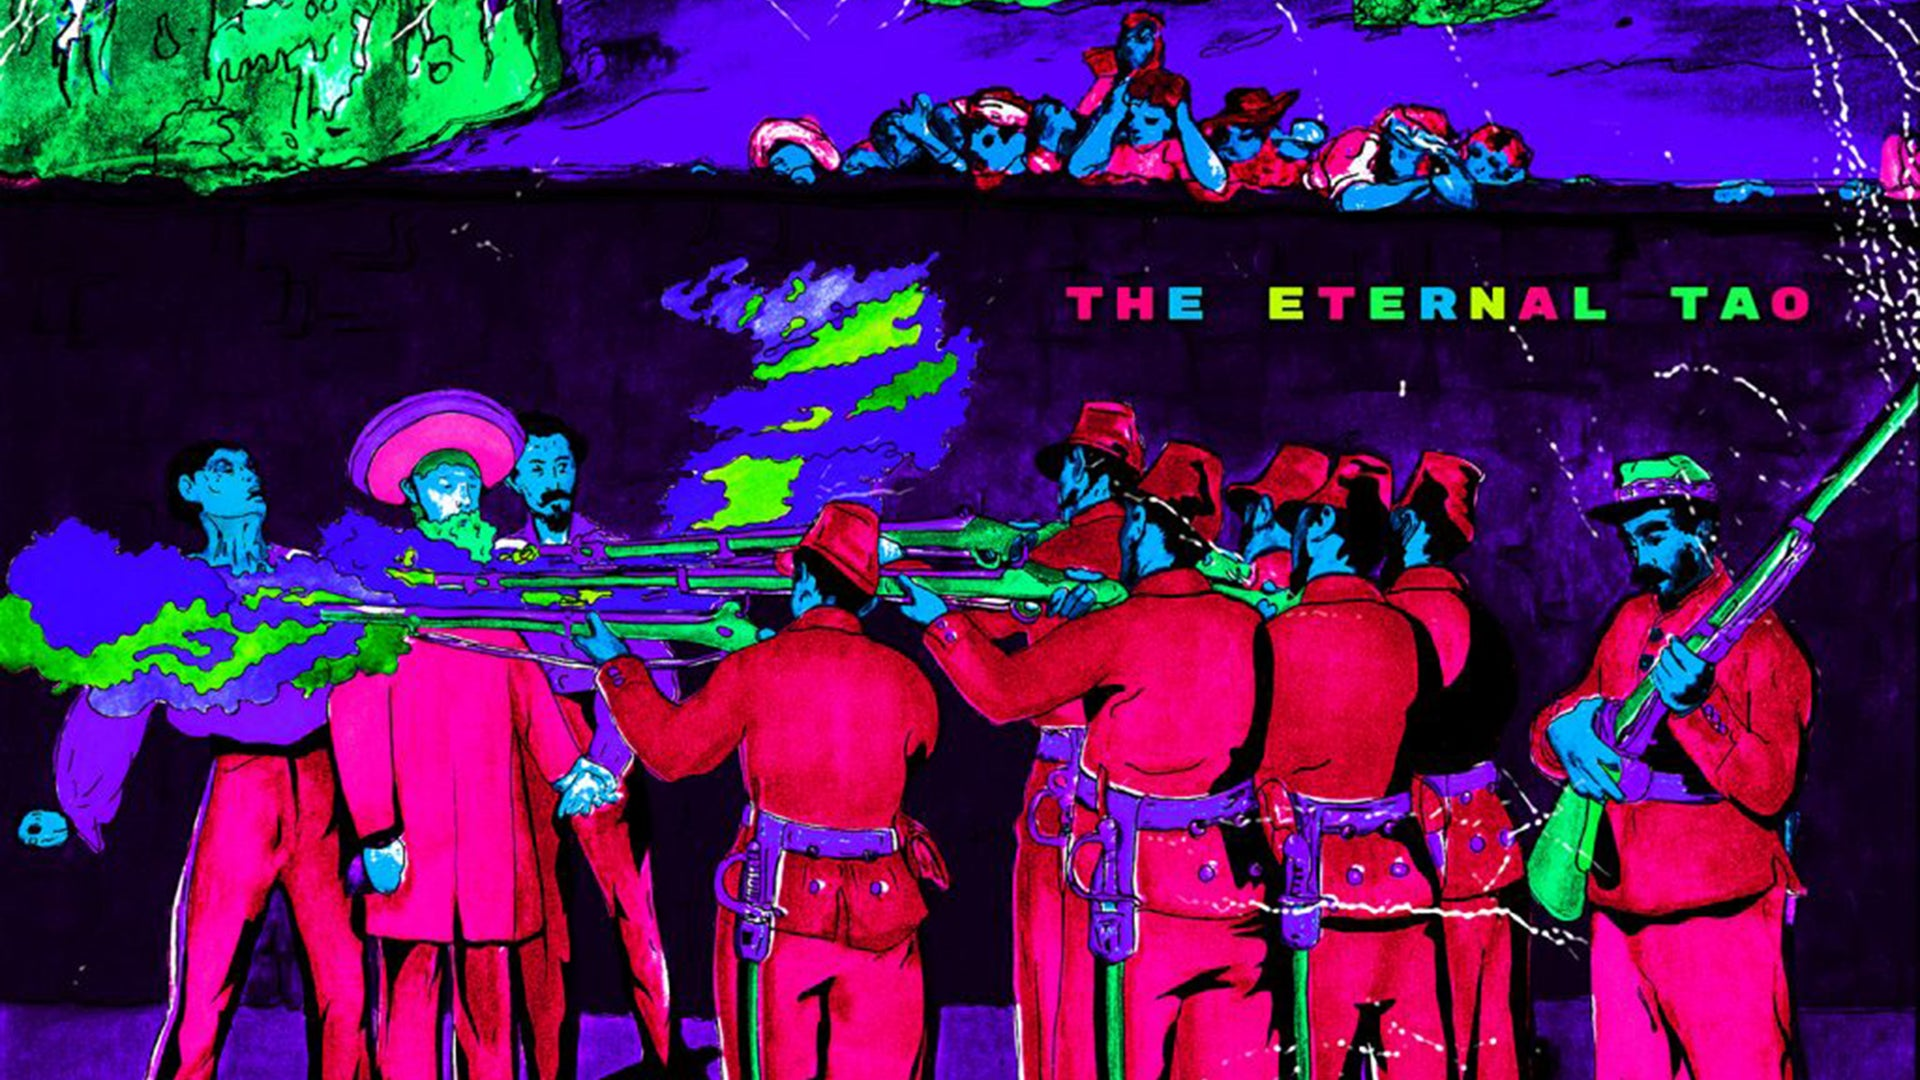 The Voidz release 'The Eternal Tao' produced Kirin J Callinan and Mac DeMarco